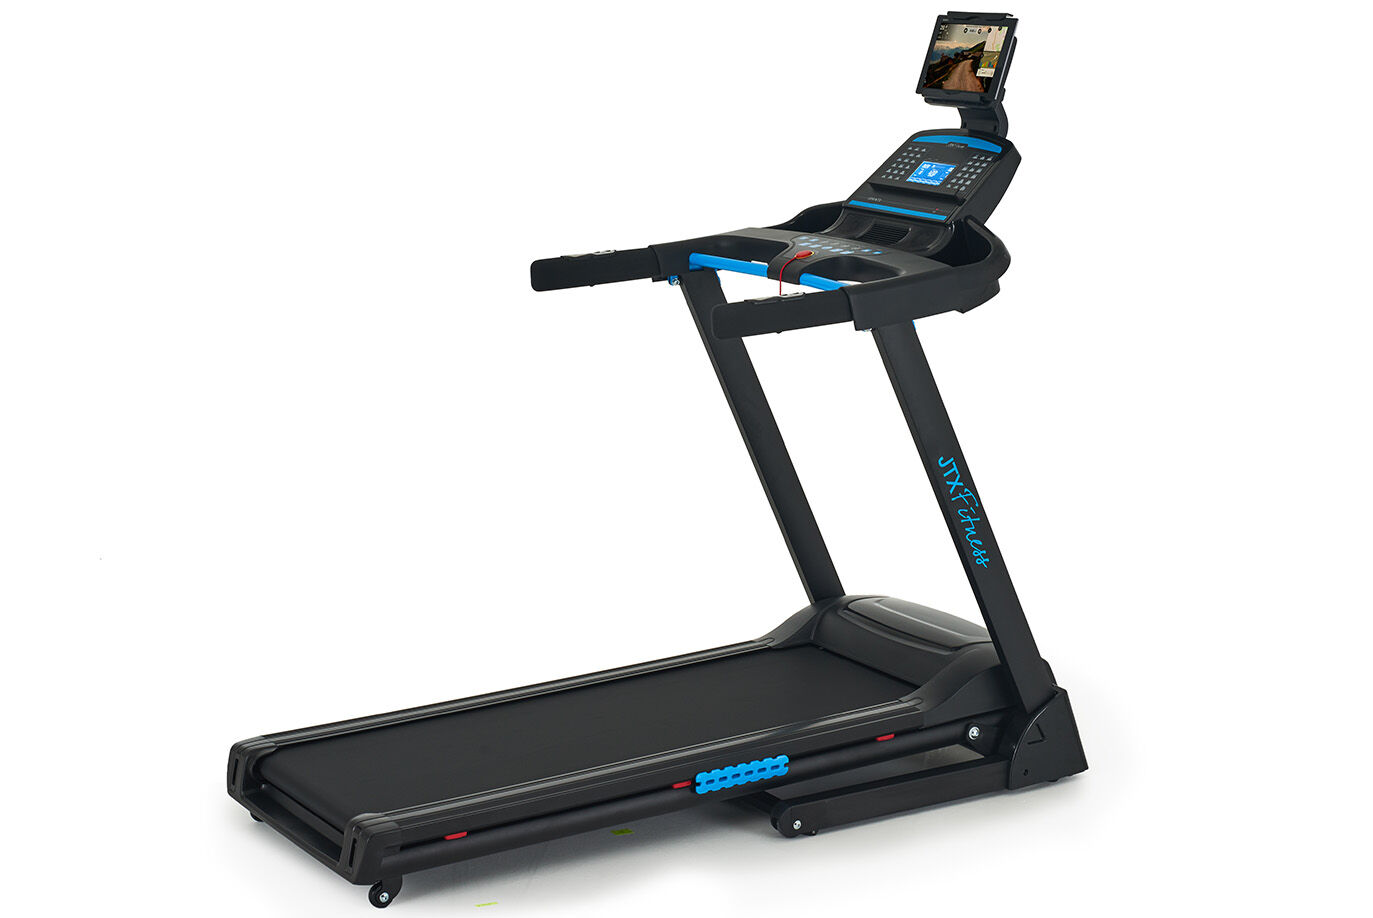 Smallest Treadmill from JTX Fitness